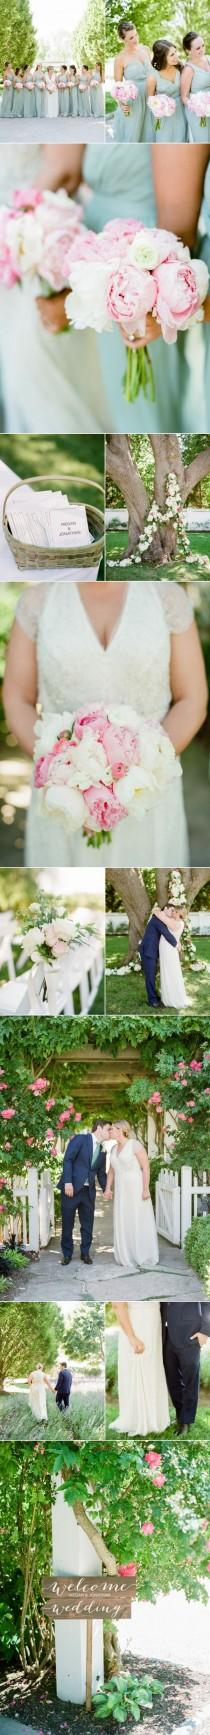 wedding photo - A Classic Vineyard Wedding Loaded With Pink Peonies